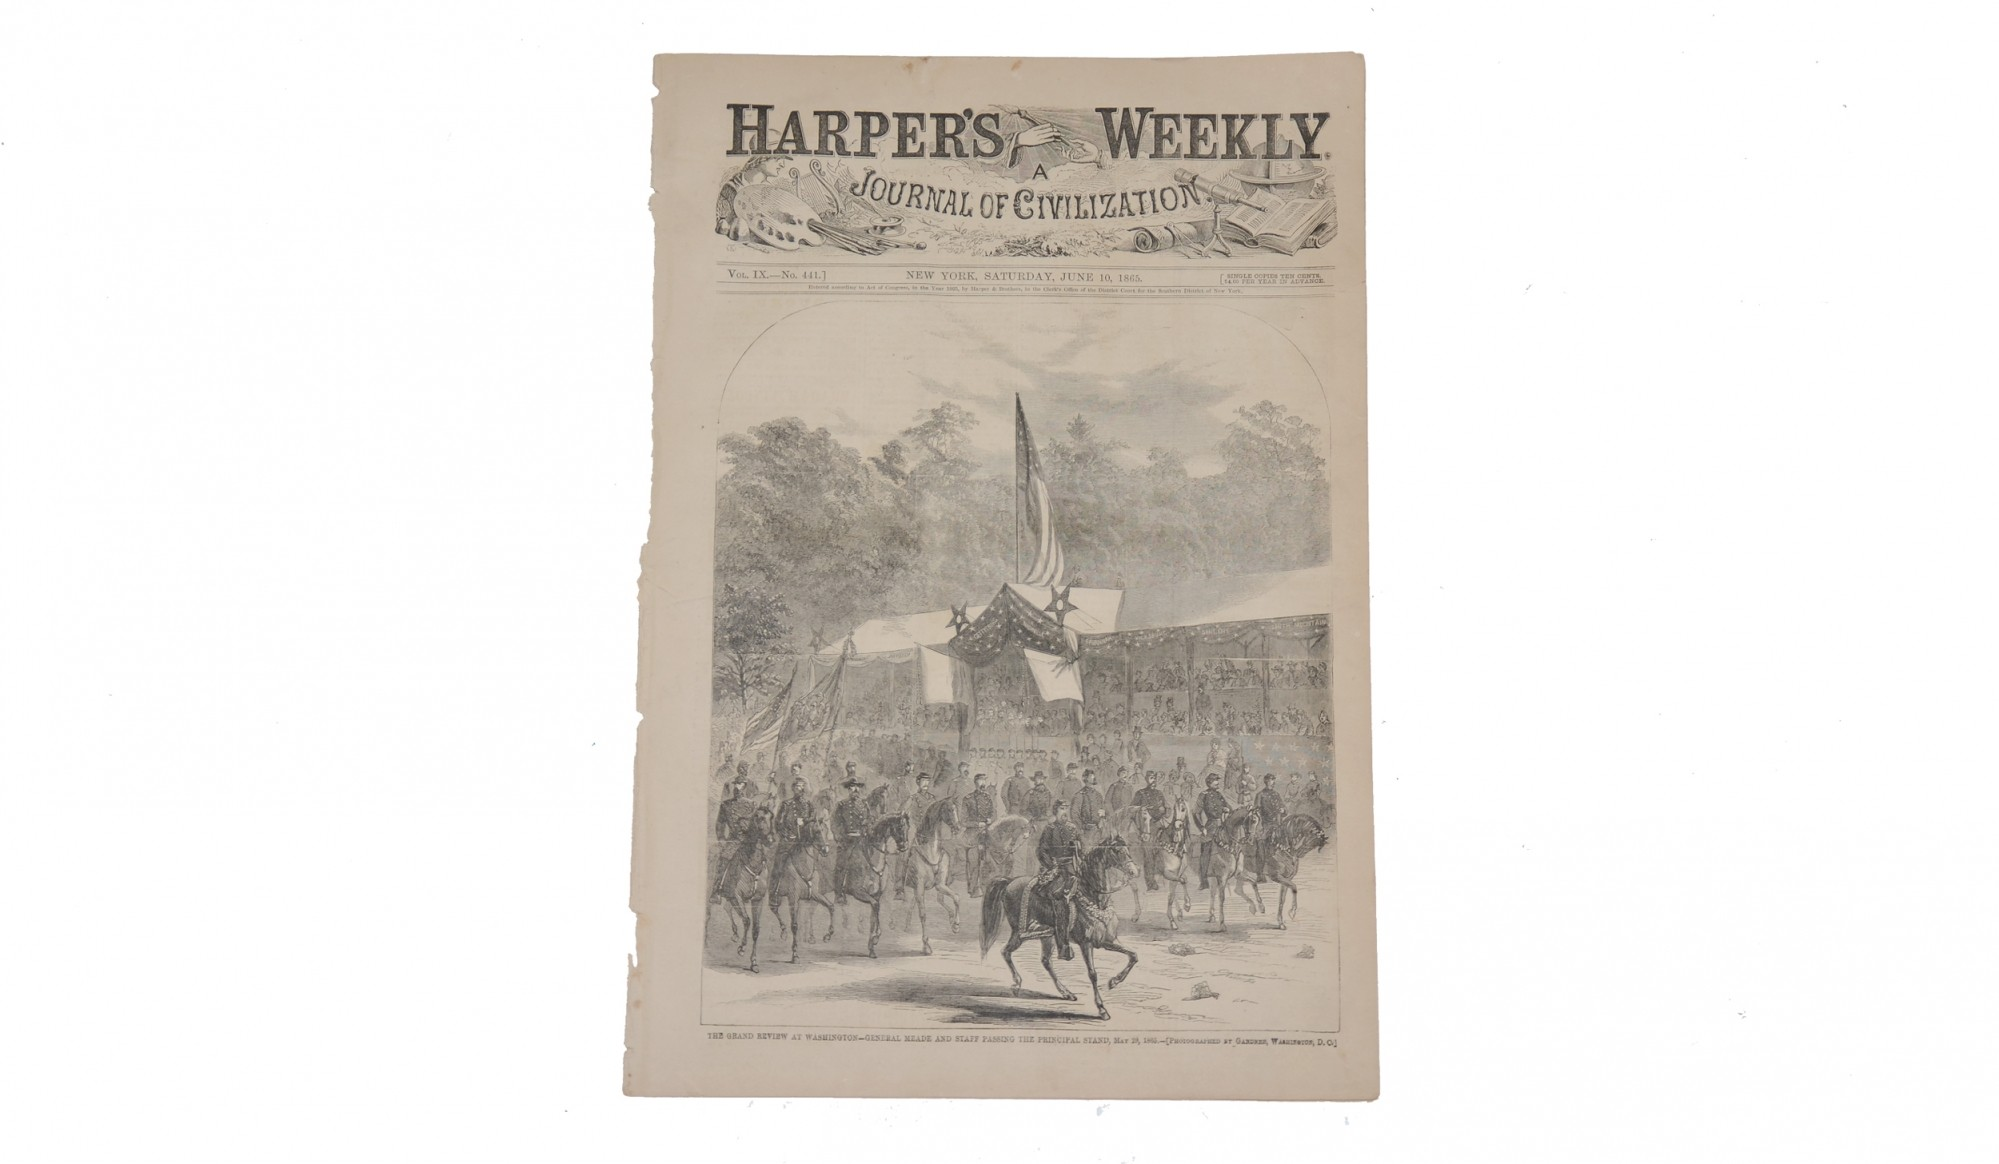 HARPER'S WEEKLY DATED JUNE 10, 1865 – GRAND REVIEW